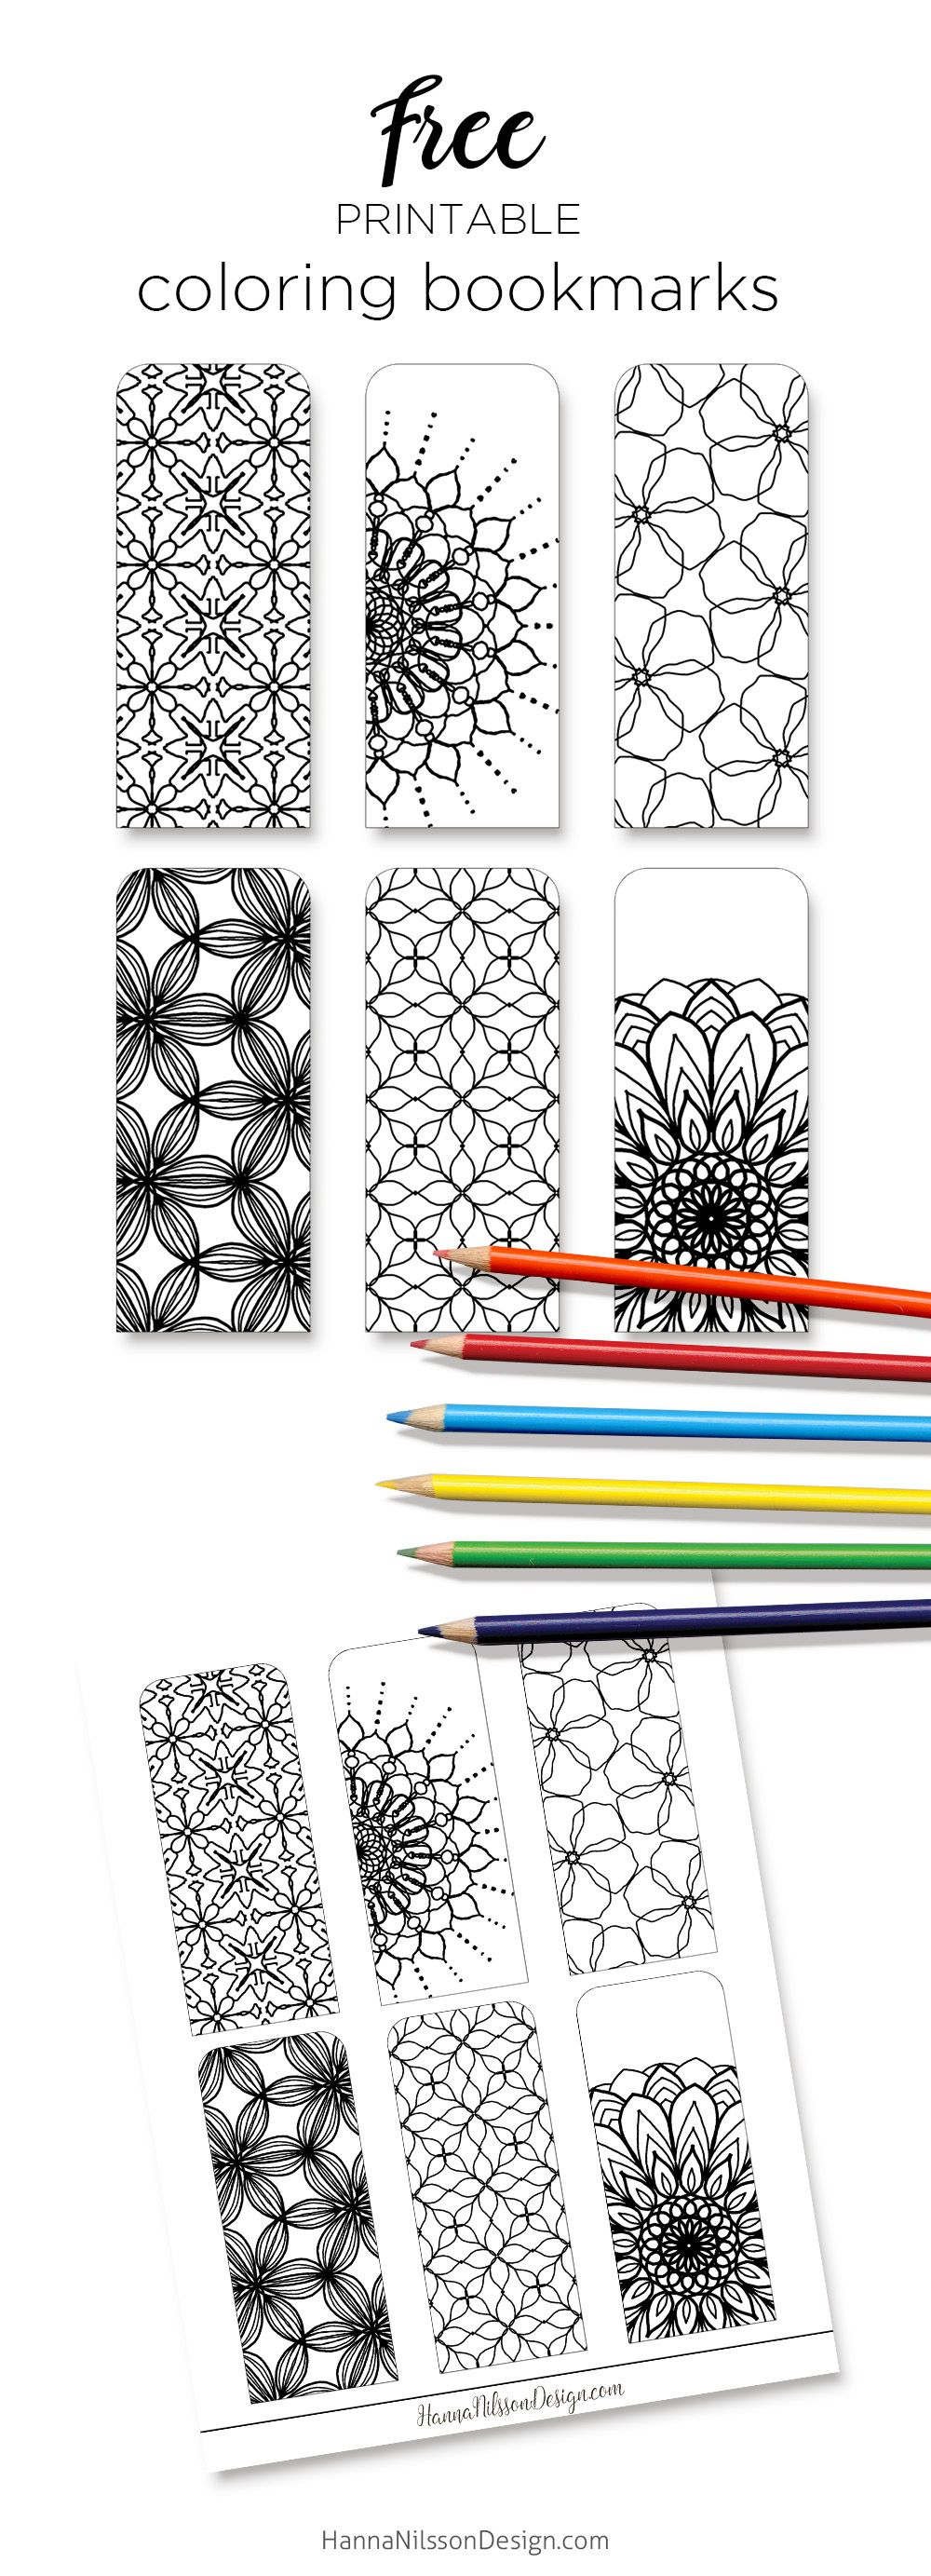 Coloring Bookmarks – Print, Color And Read | Printables | Bookmark - Free Printable Bookmarks To Color